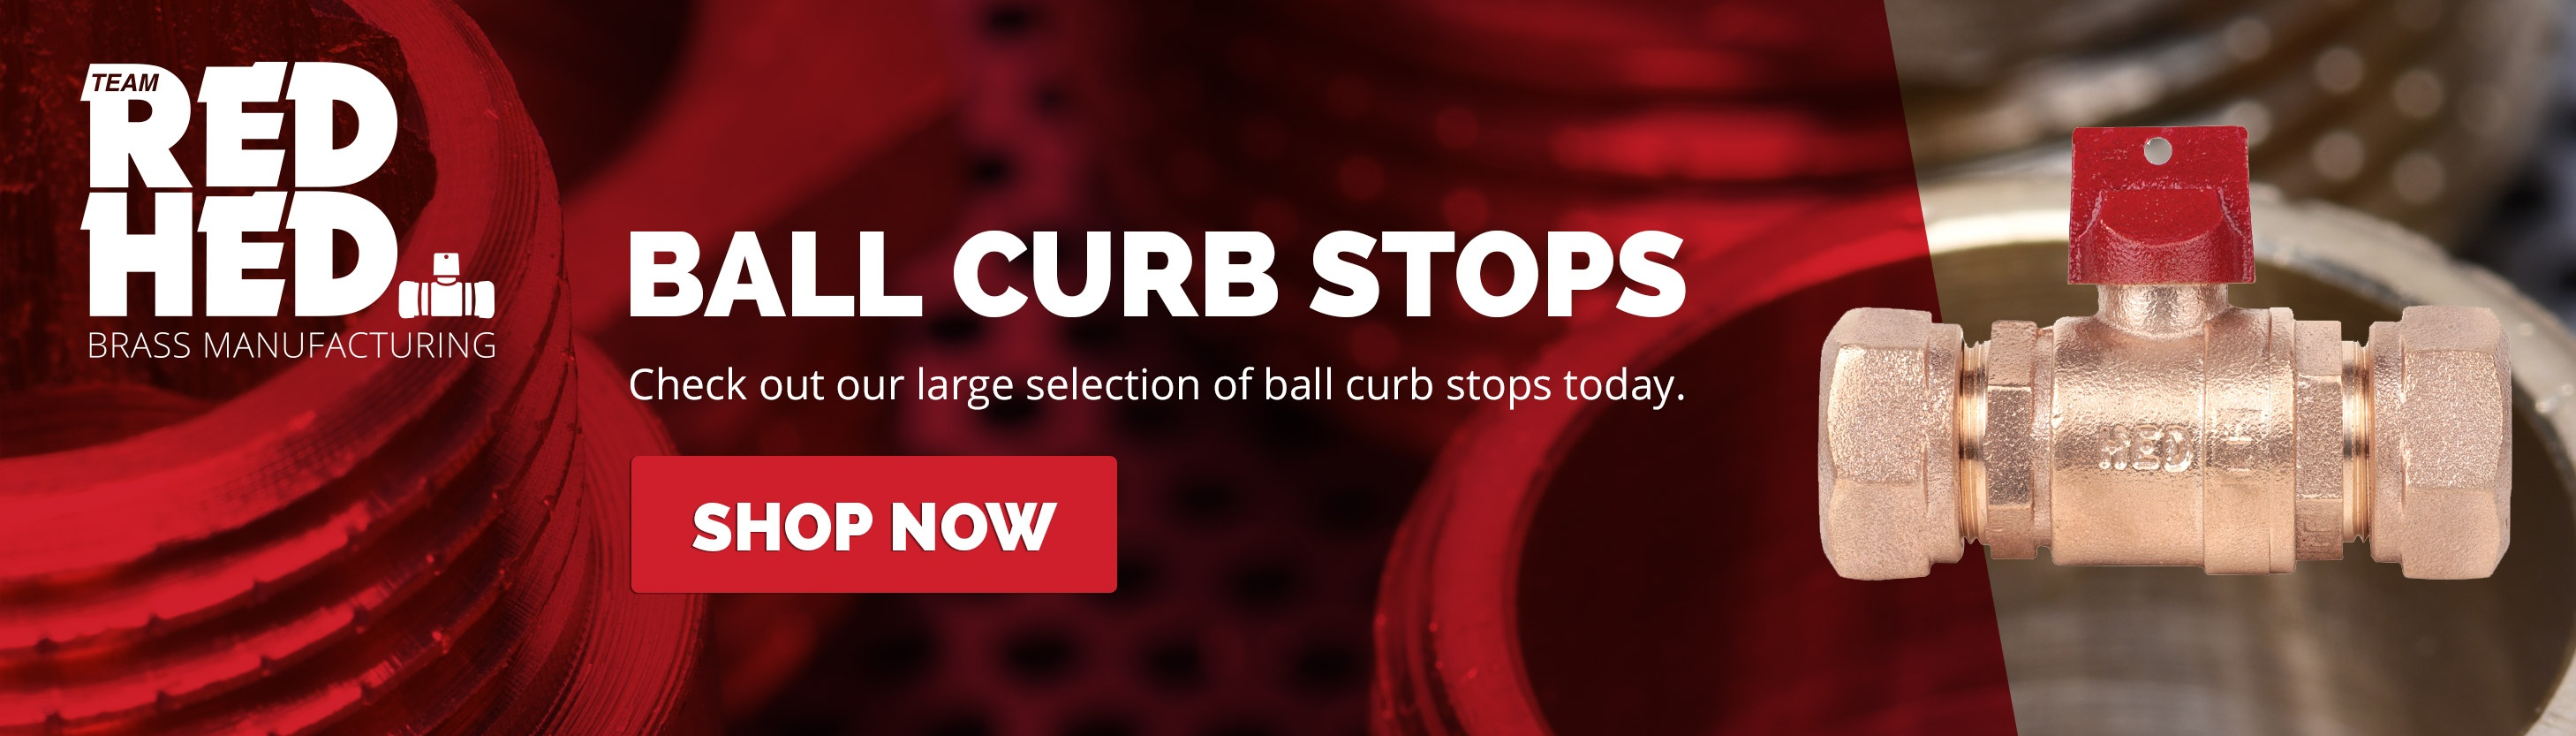 Ball Curb Stops CTA